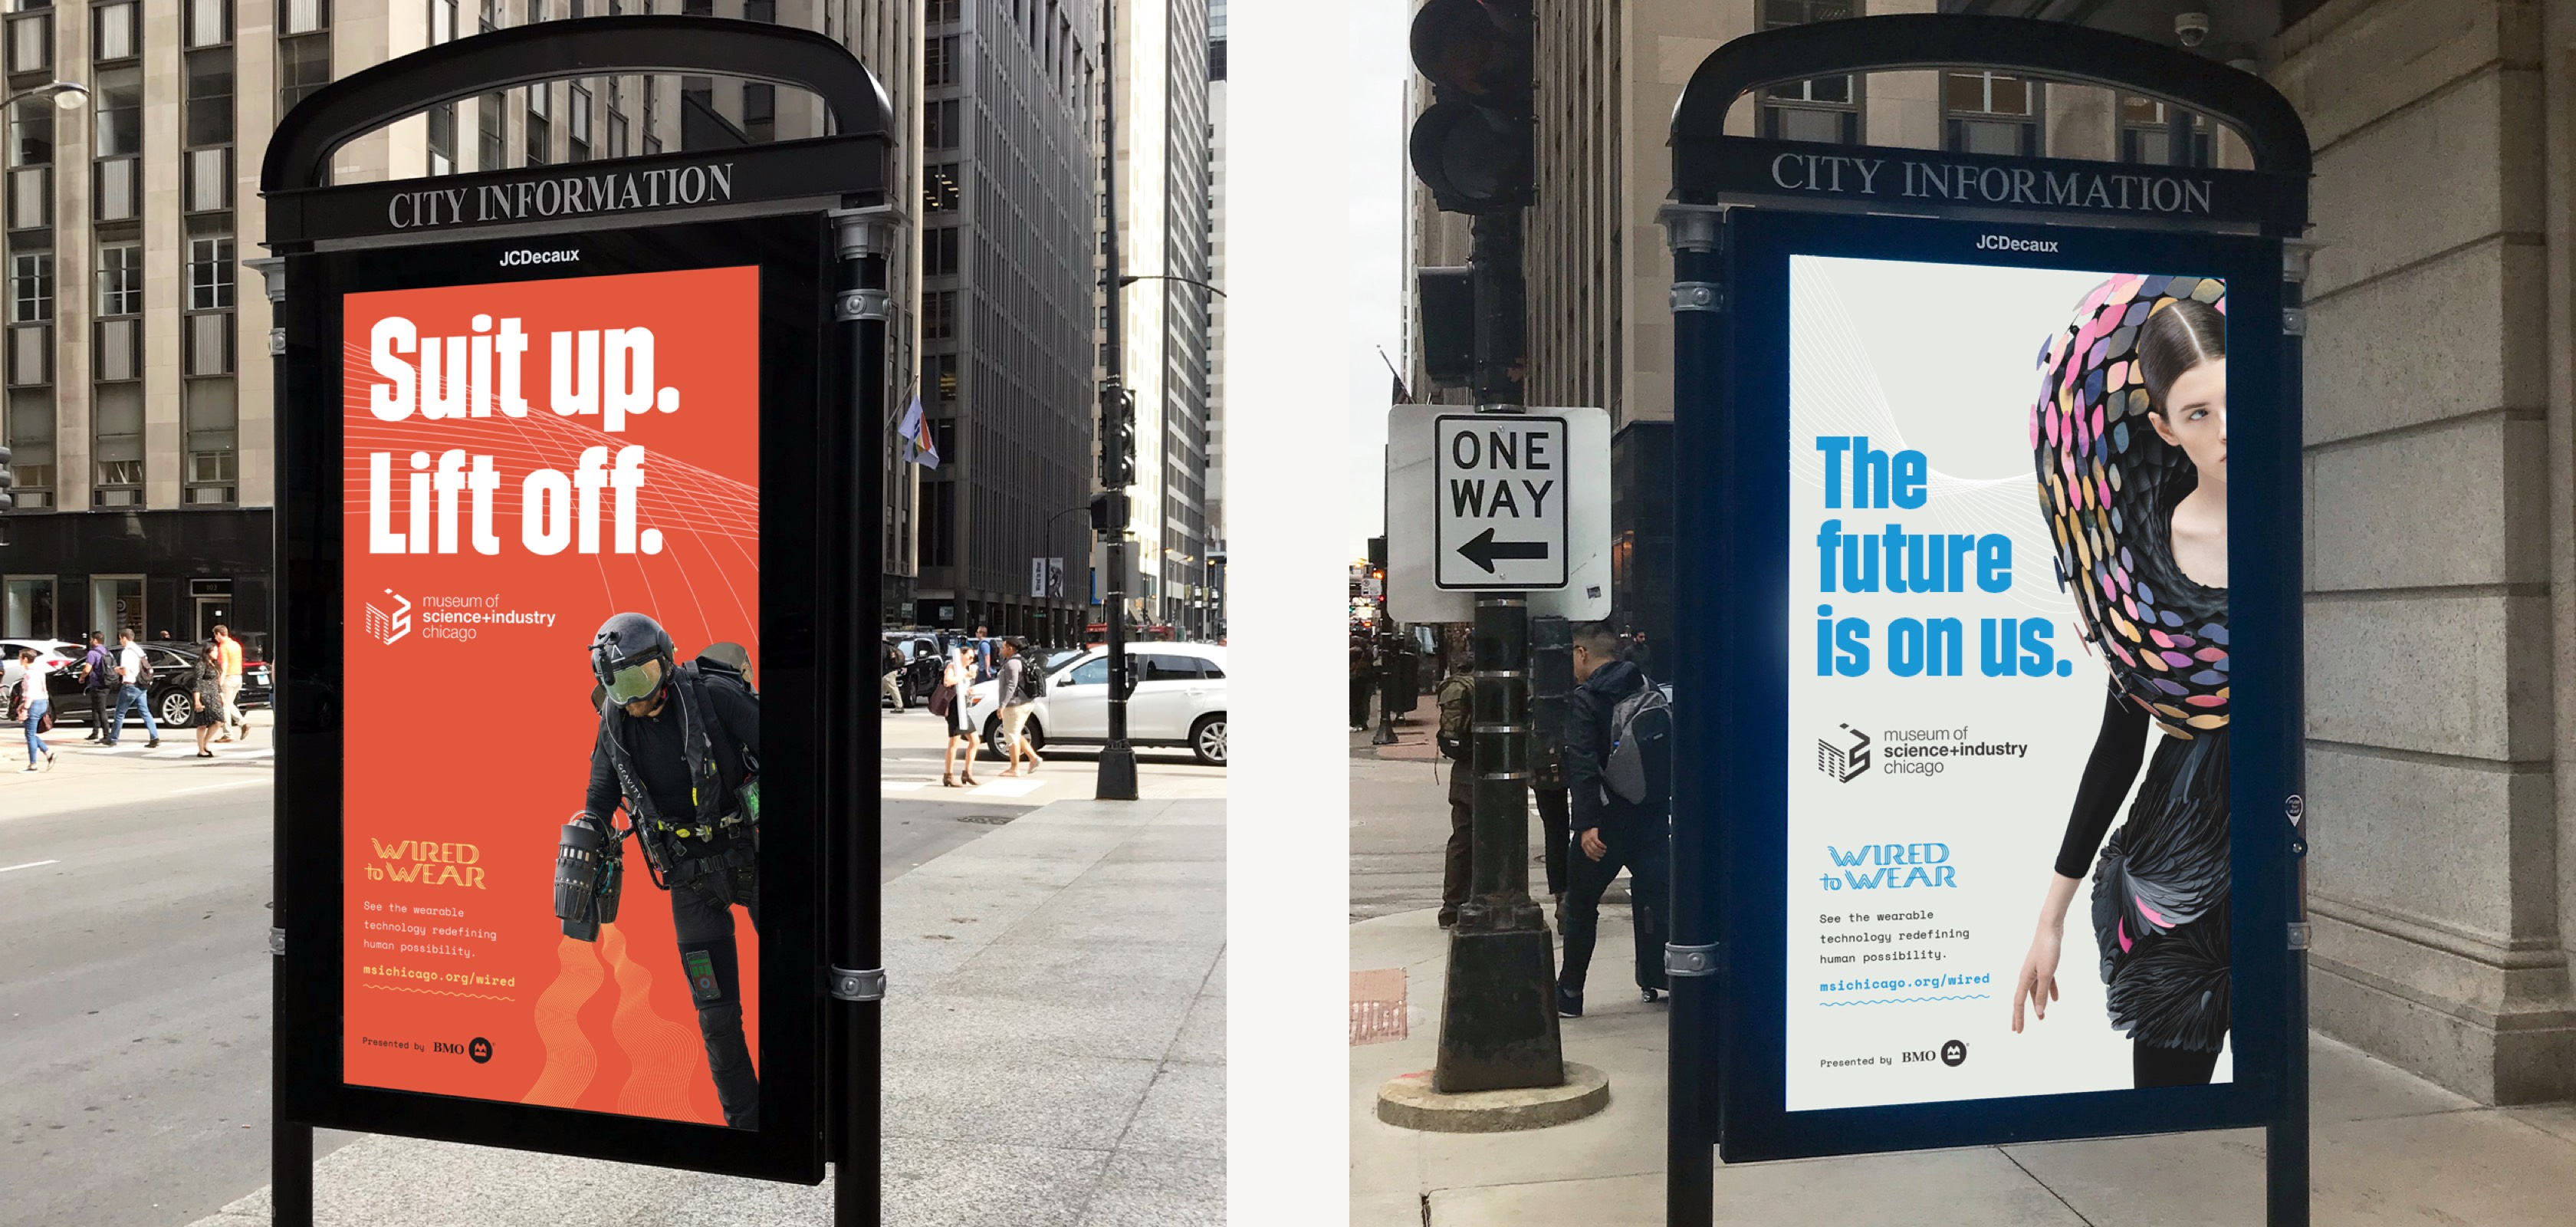 Out of home advertising for Wired to Wear exhibit, including street level posters of jet pack and interactive gown.